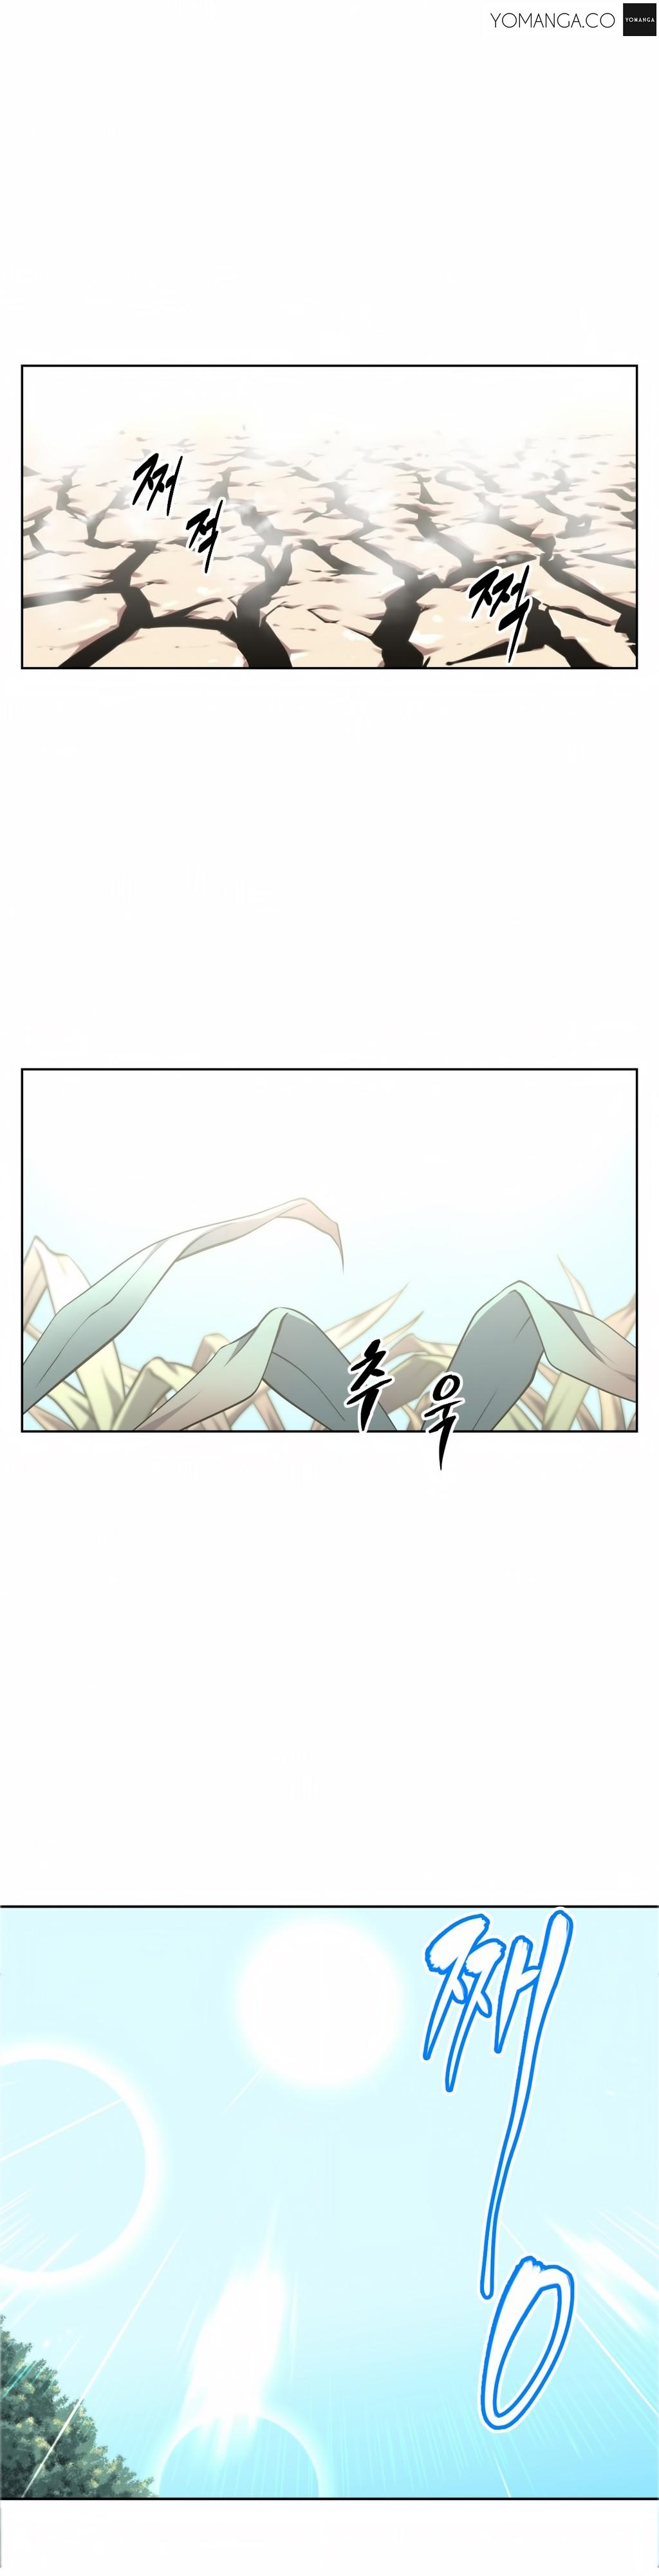 Brawling Go 0-15 Chapters 429